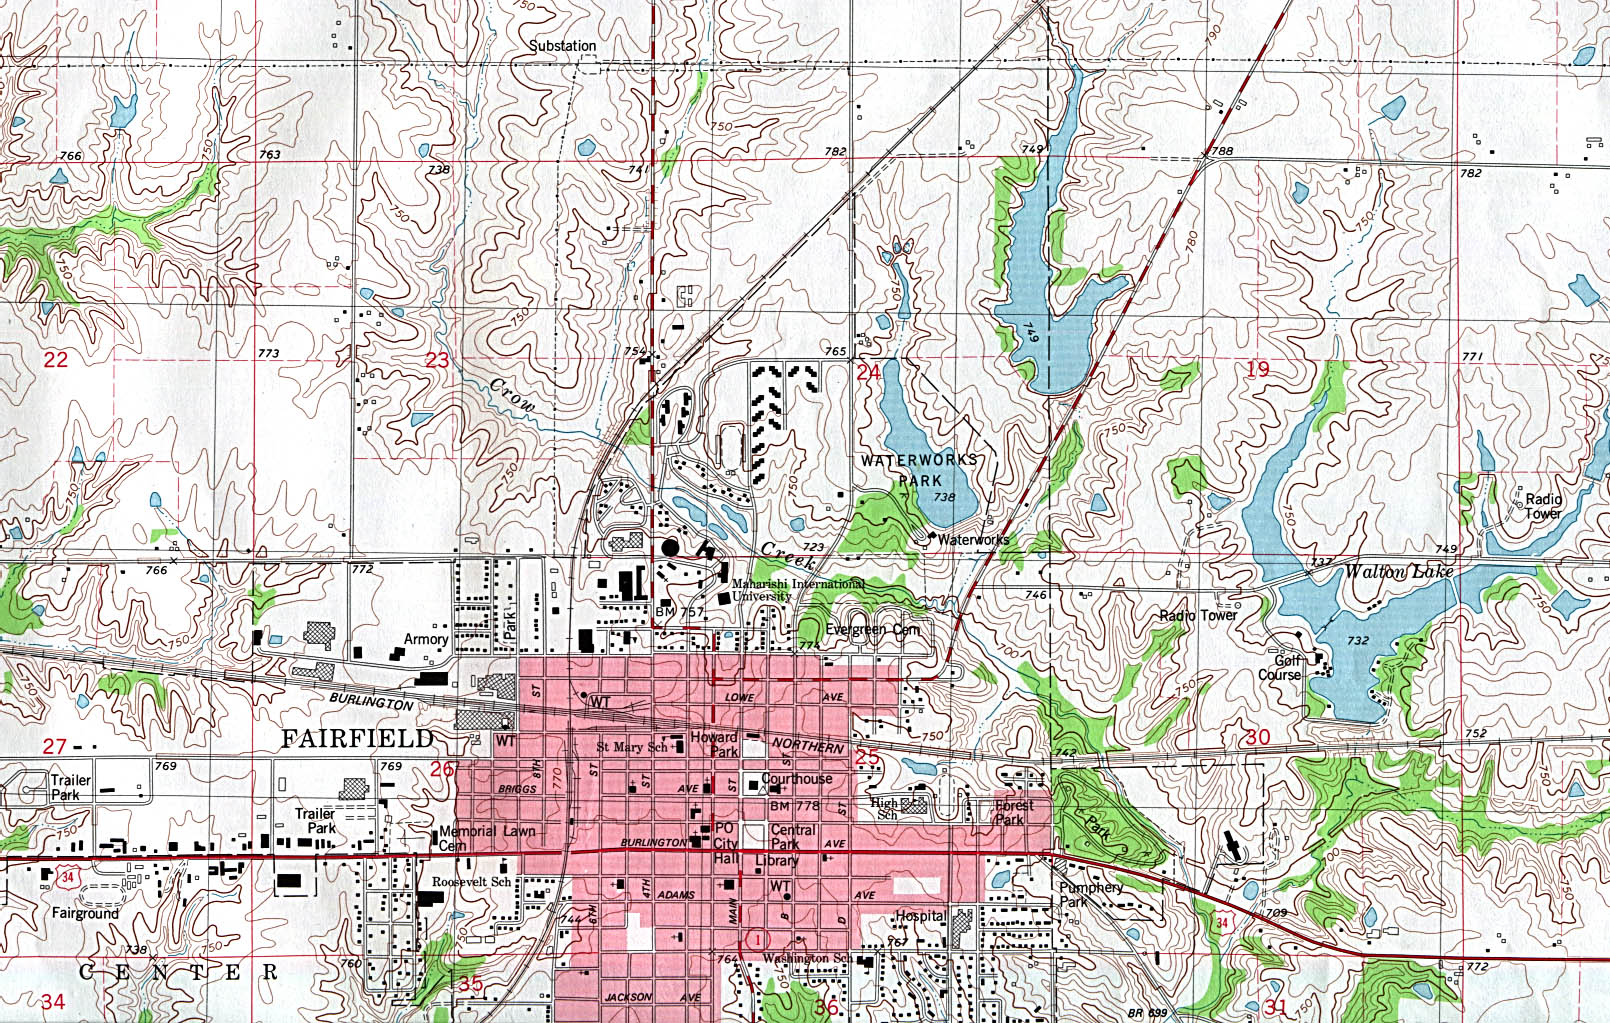 State Of Iowa Mapsof Interstate Highways Cities Typography - Cities in iowa map